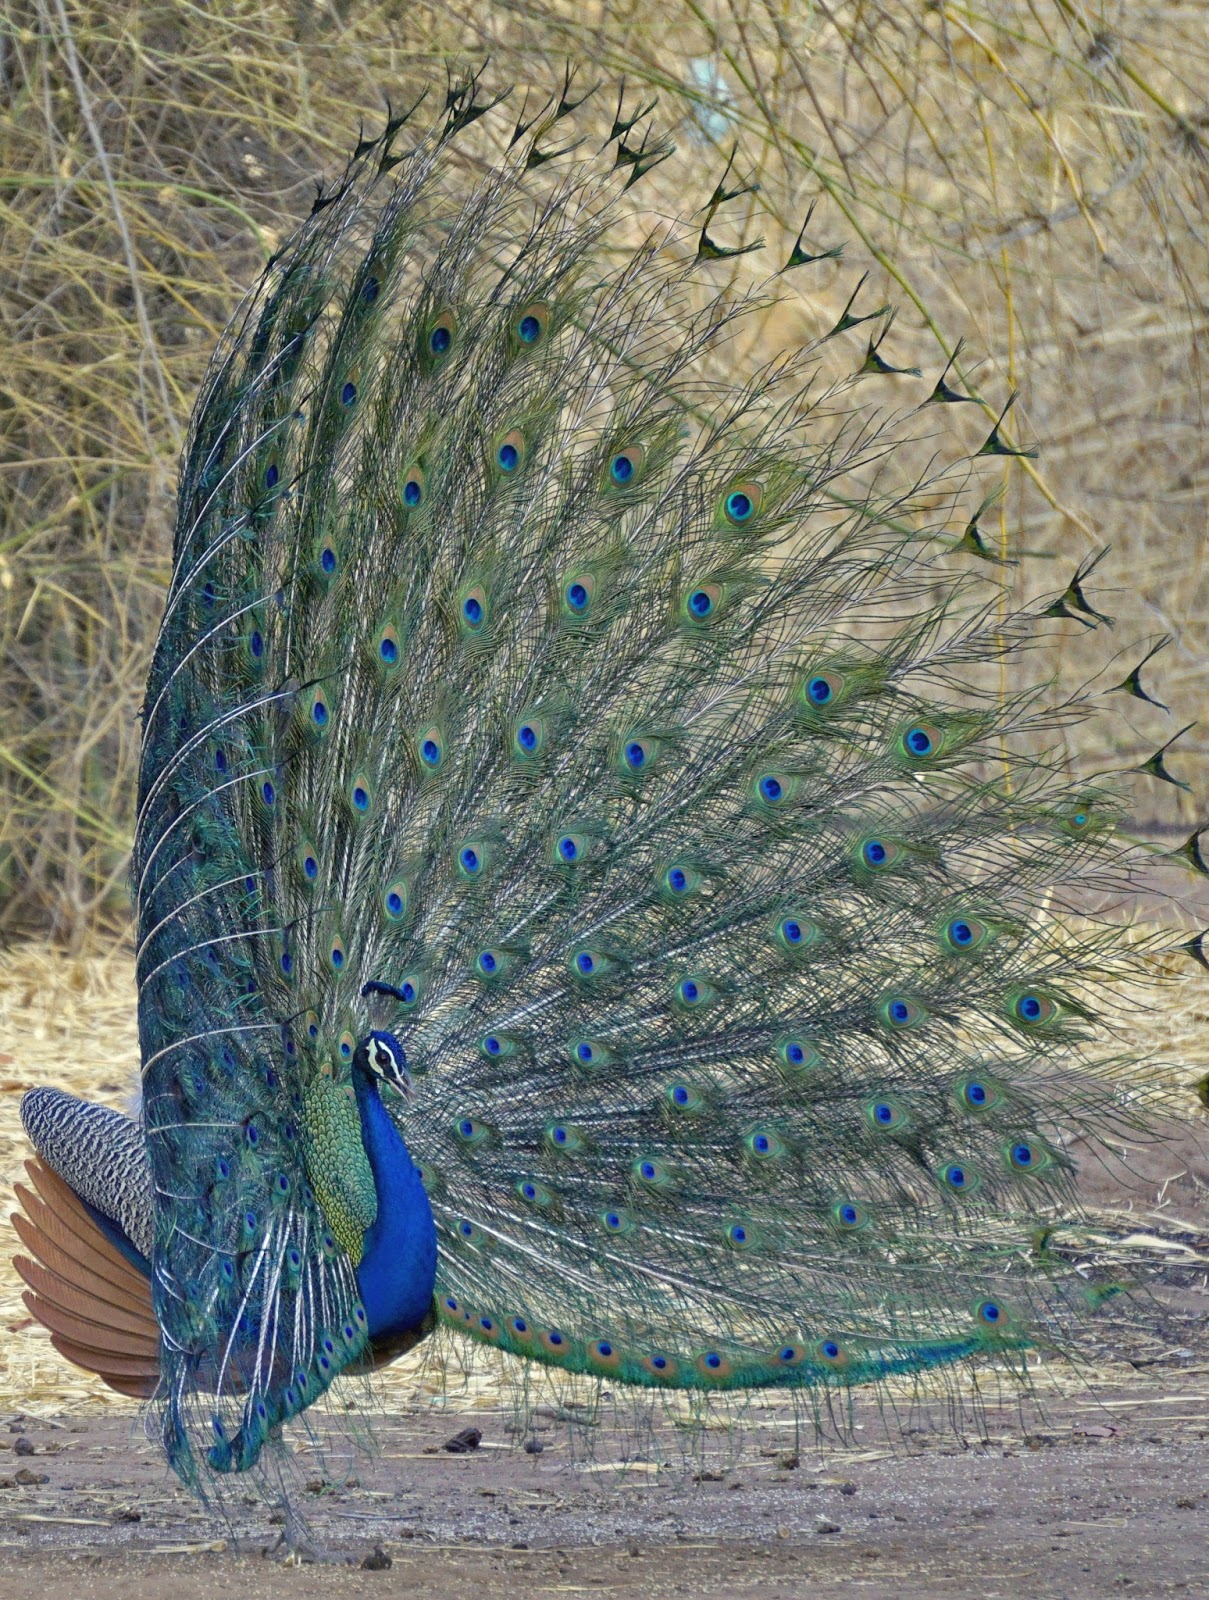 Peacock beautiful display.